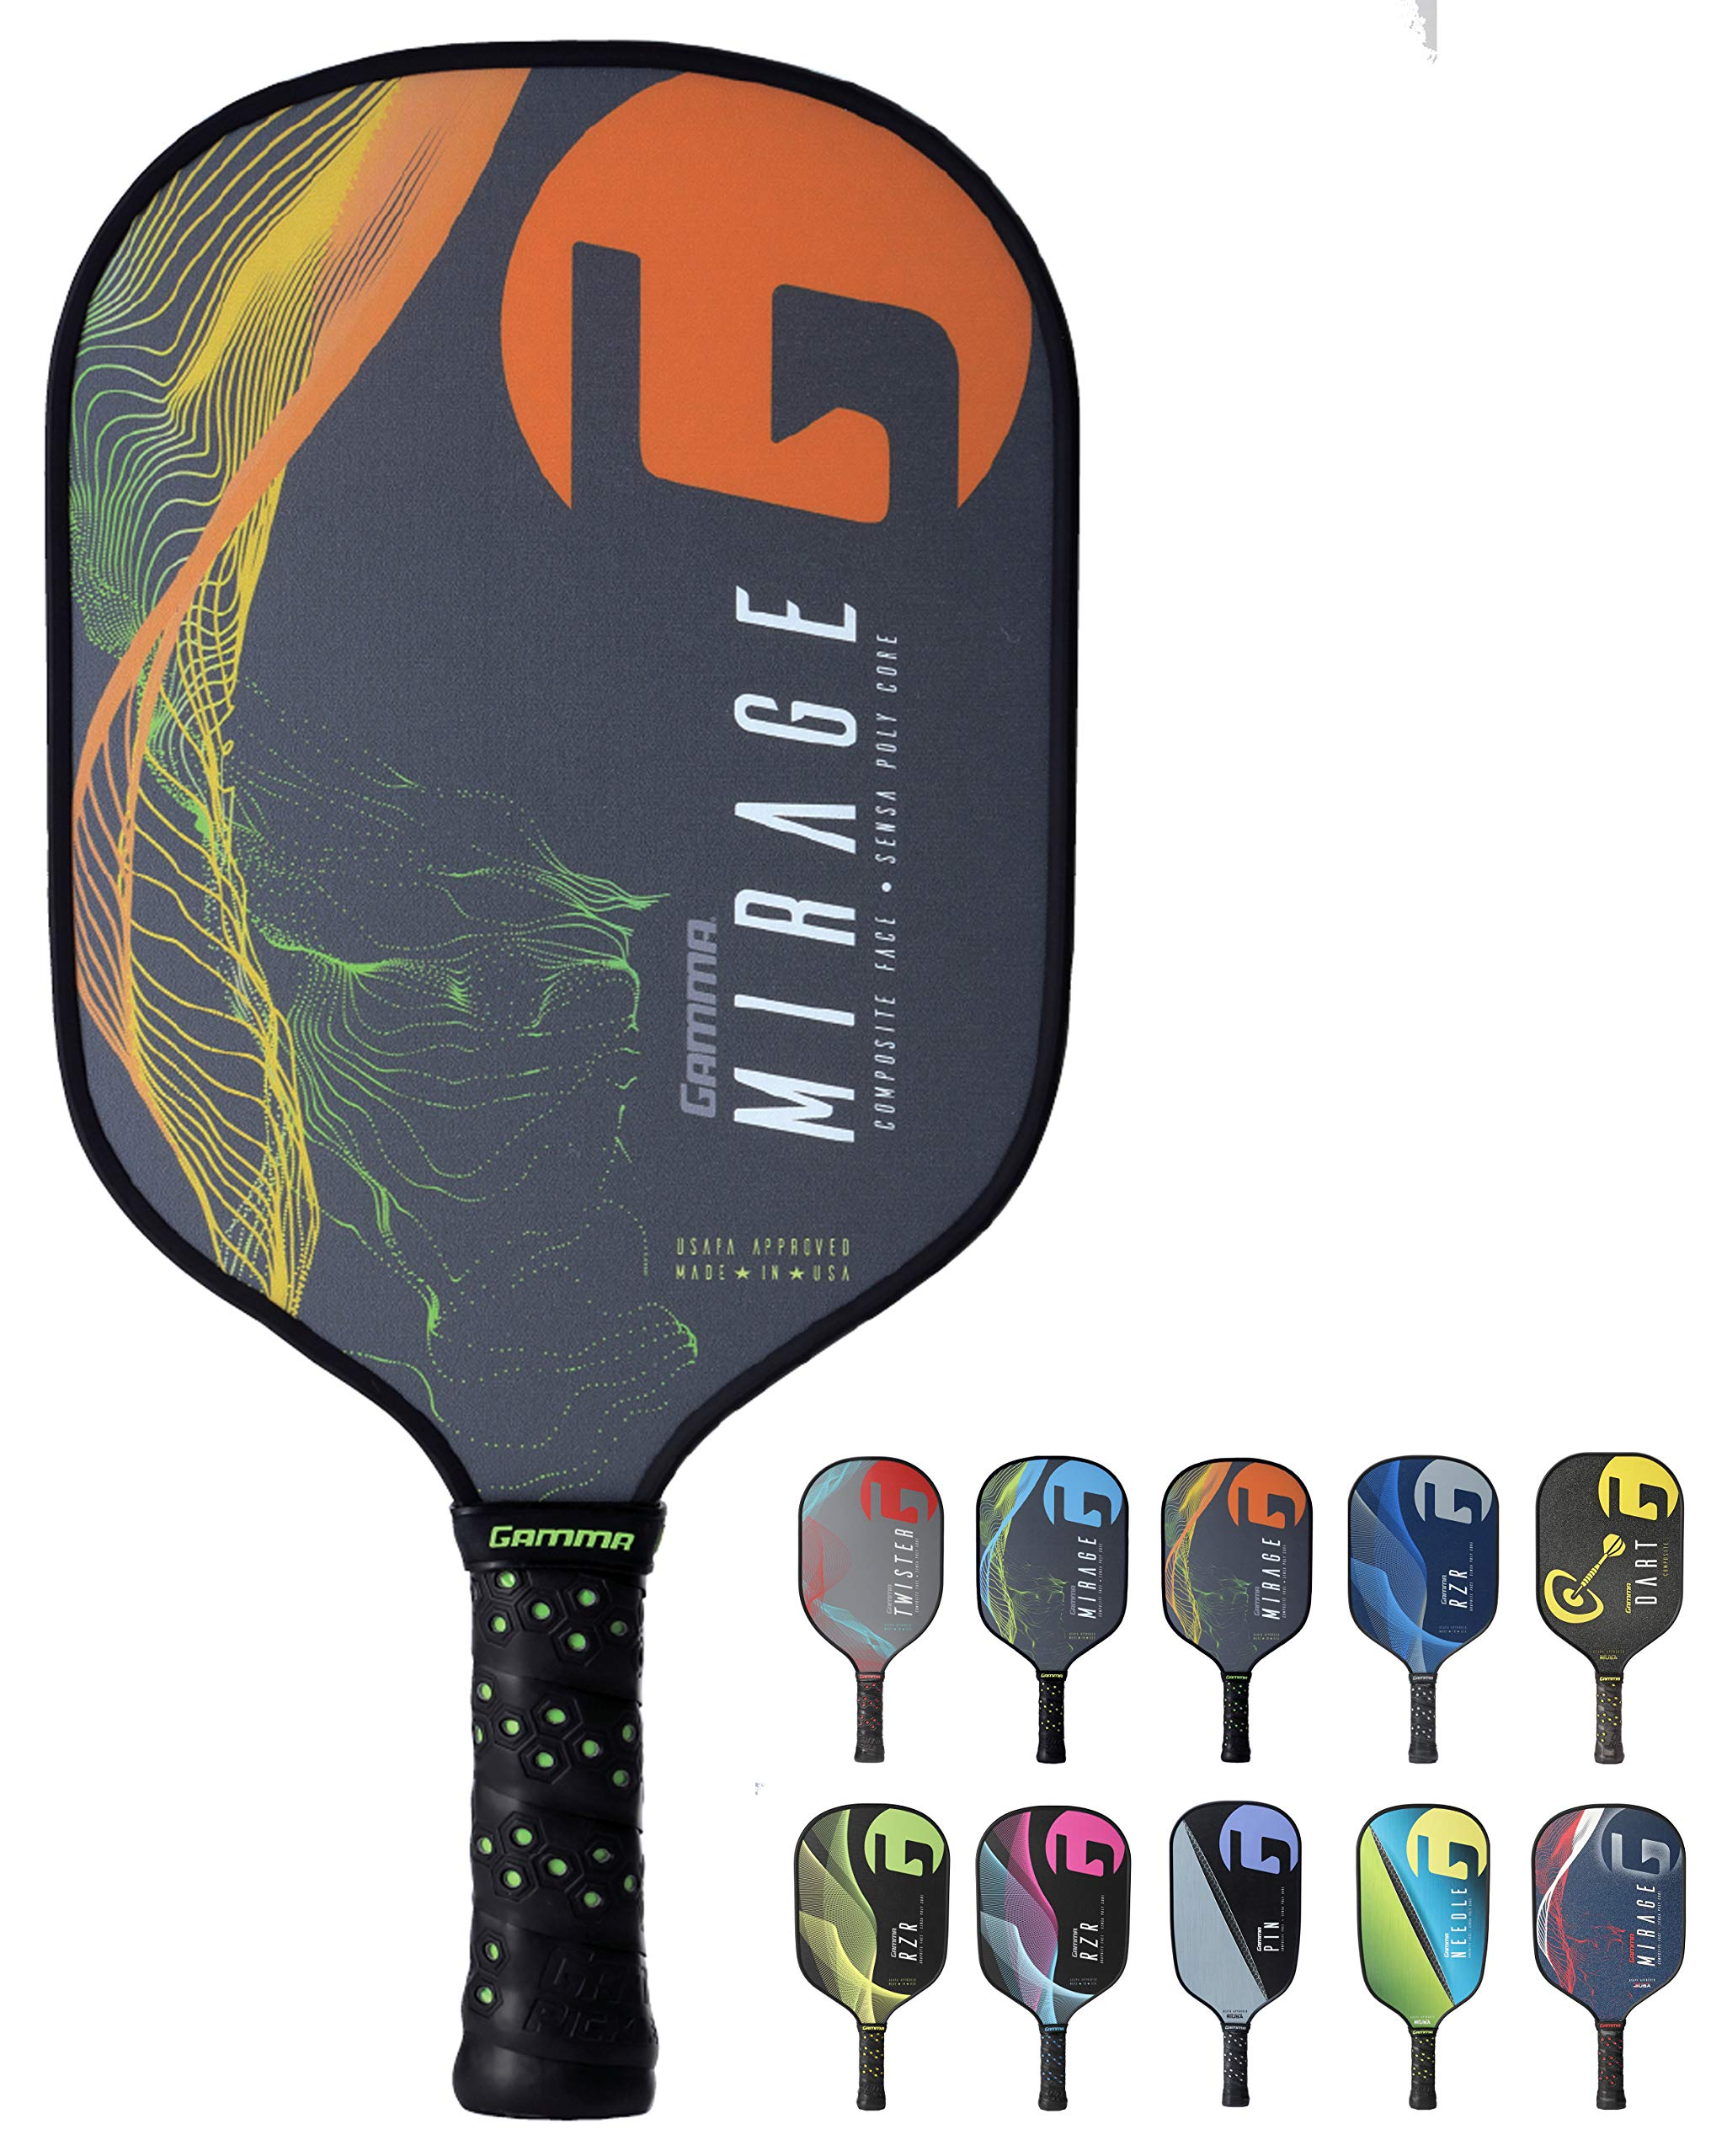 Gamma Mirage Composite Pickleball Paddle: Pickle Ball Paddles for Indoor & Outdoor Play - USAPA Approved Racquet for Adults & Kids - Orange/Green by Gamma (Image #1)